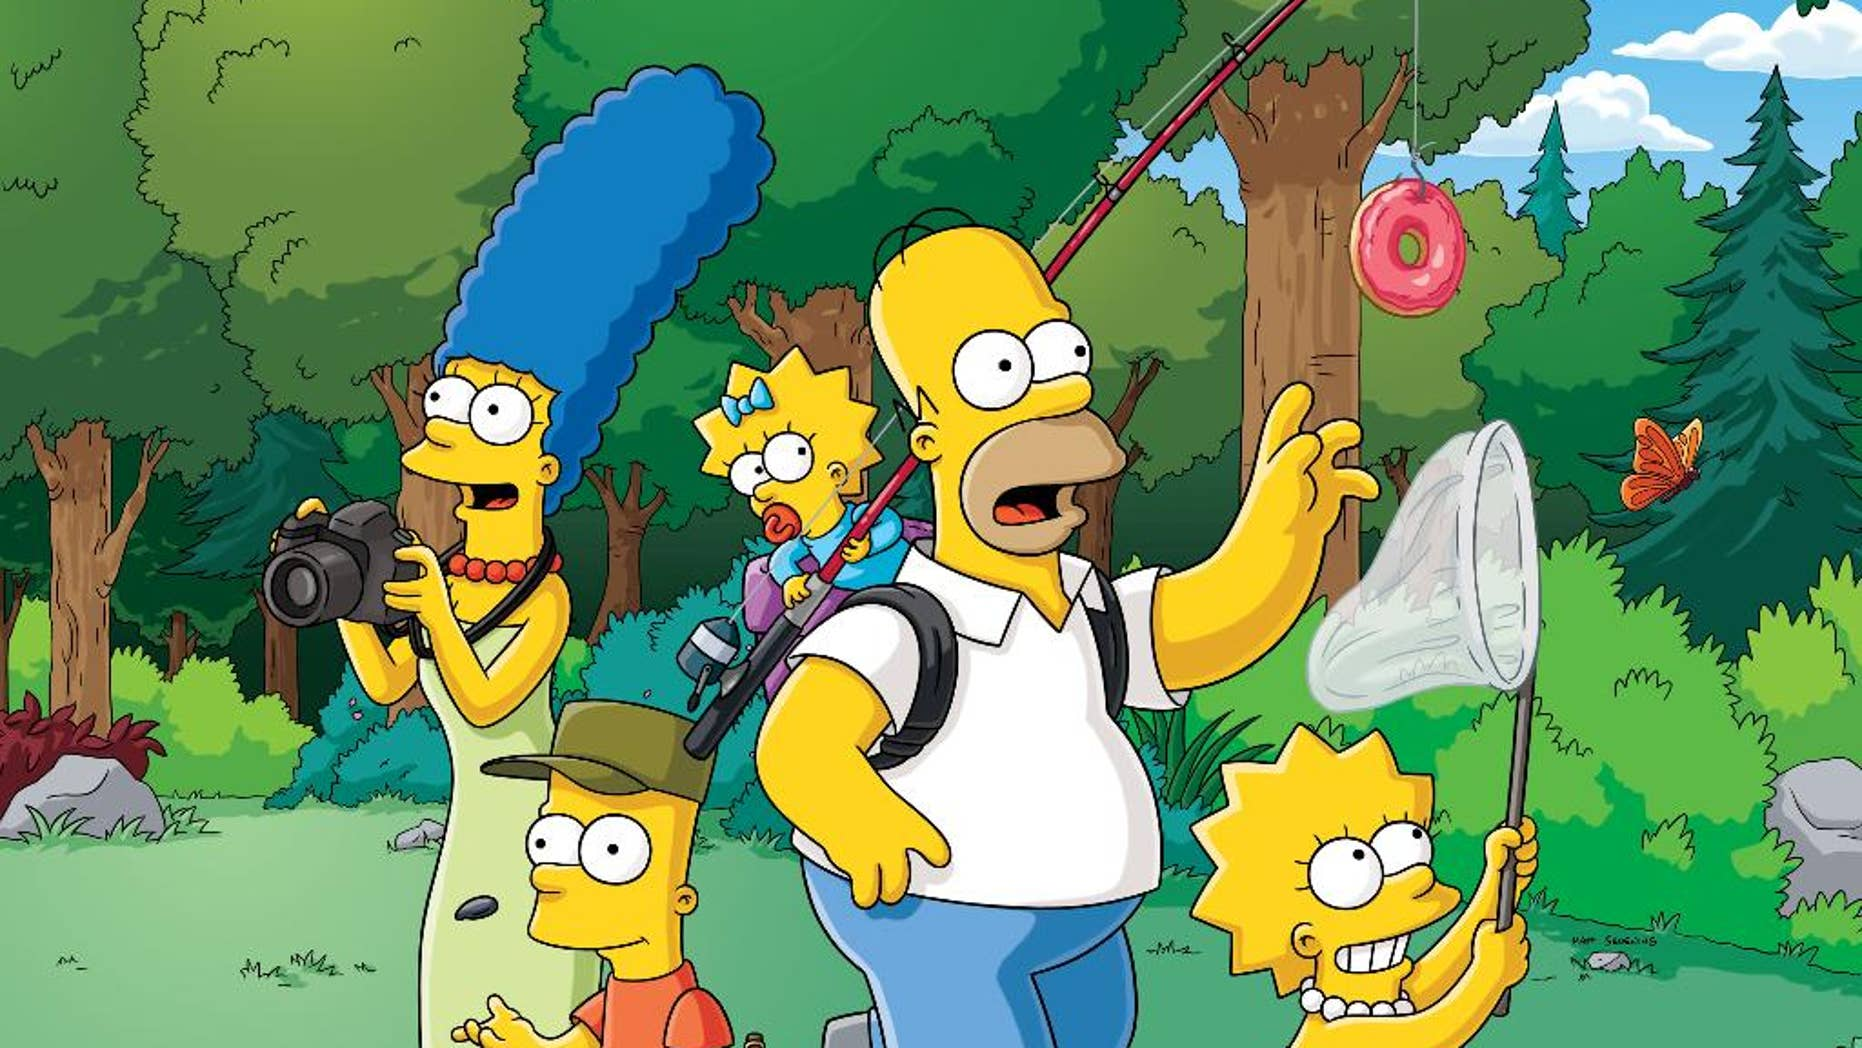 """This photo provided by Fox shows a scene from """"The Simpsons,"""" airing on Sundays. Fox said Monday, May 4, 2015, it has renewed the animated series for its 27th and 28th seasons, which will carry it to a total of 625 episodes. (FOX via AP)"""